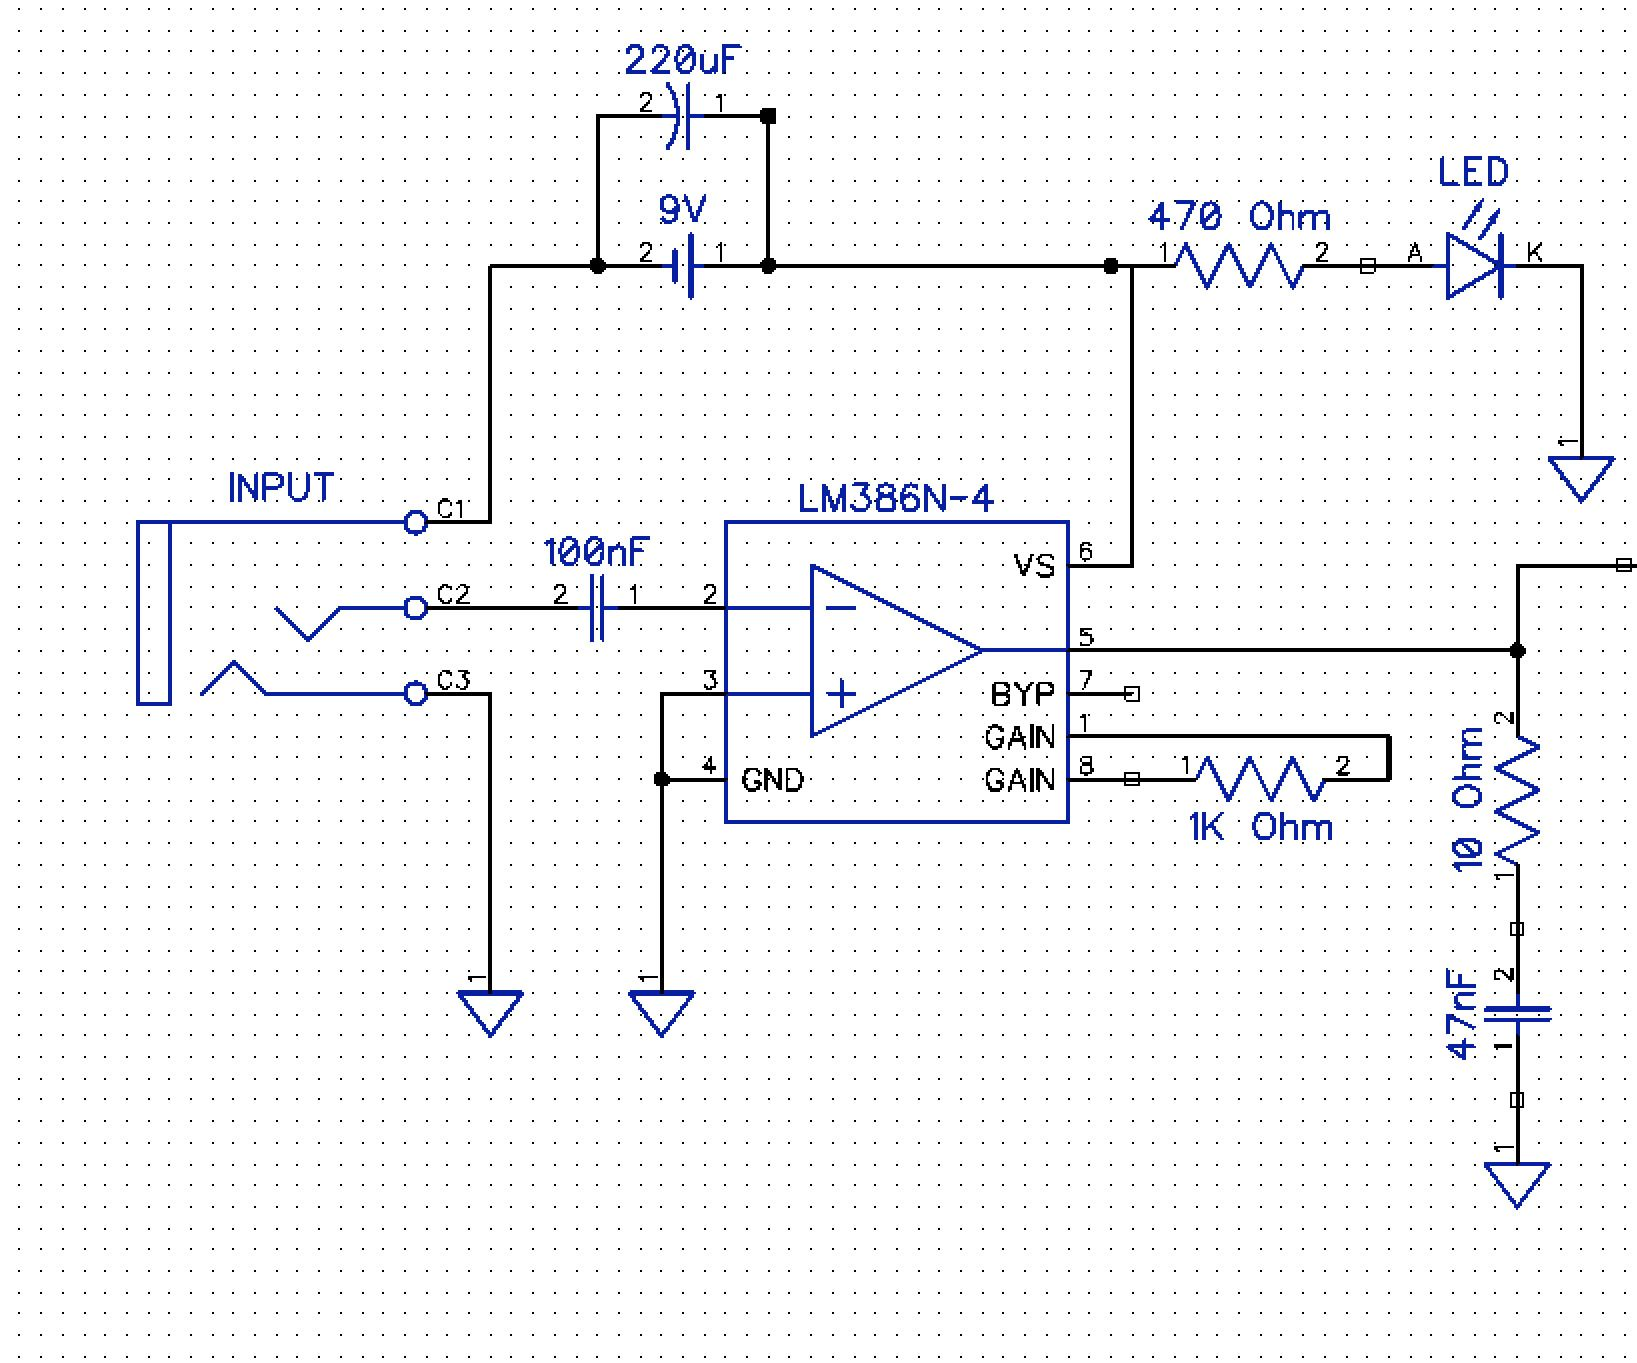 From Schematic to Protoboard  Building a Simple LM386 Guitar Amp on a DIP Protoboard